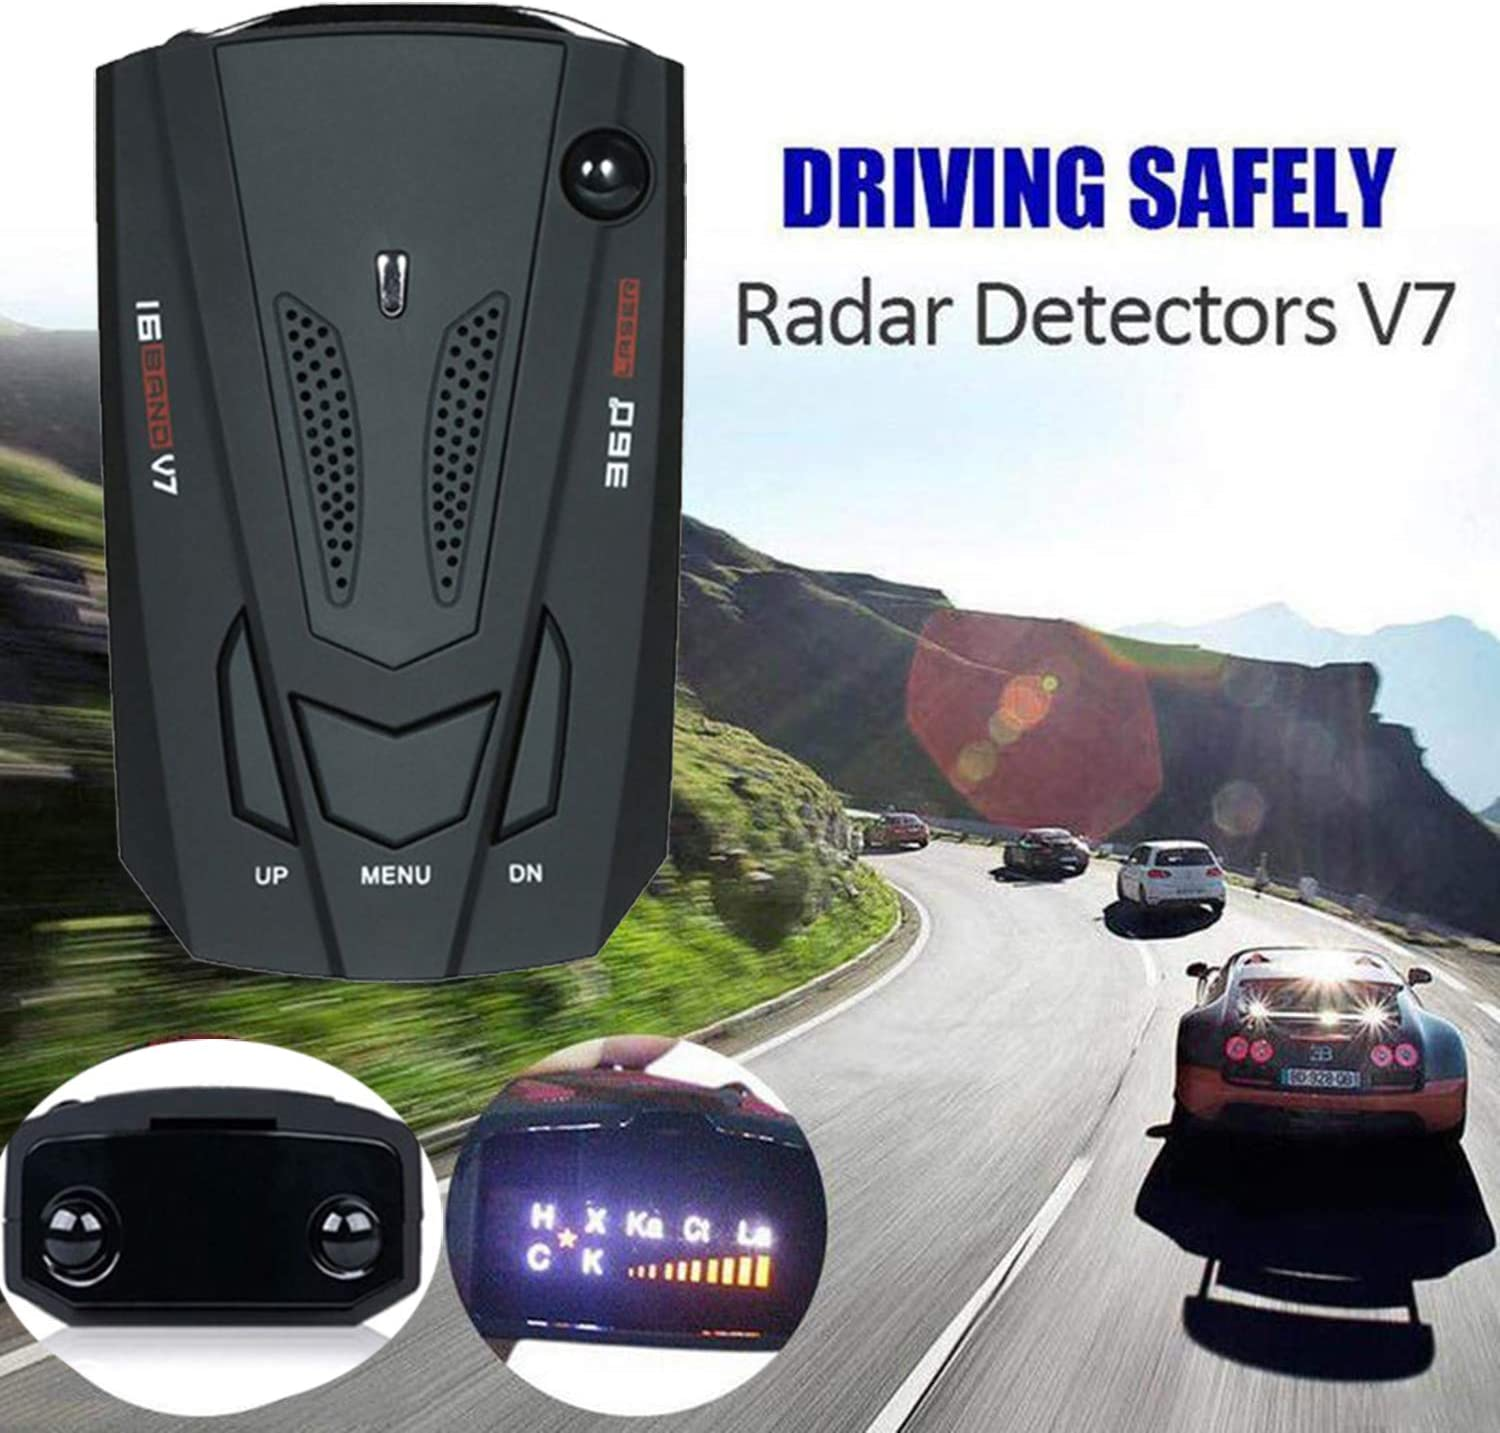 Laser Radar Detector for Cars FCC Approved Voice Alert and Car Speed Alarm System City//Highway Mode 360 Degree Detection Radar Detectors with LED Display for Cars